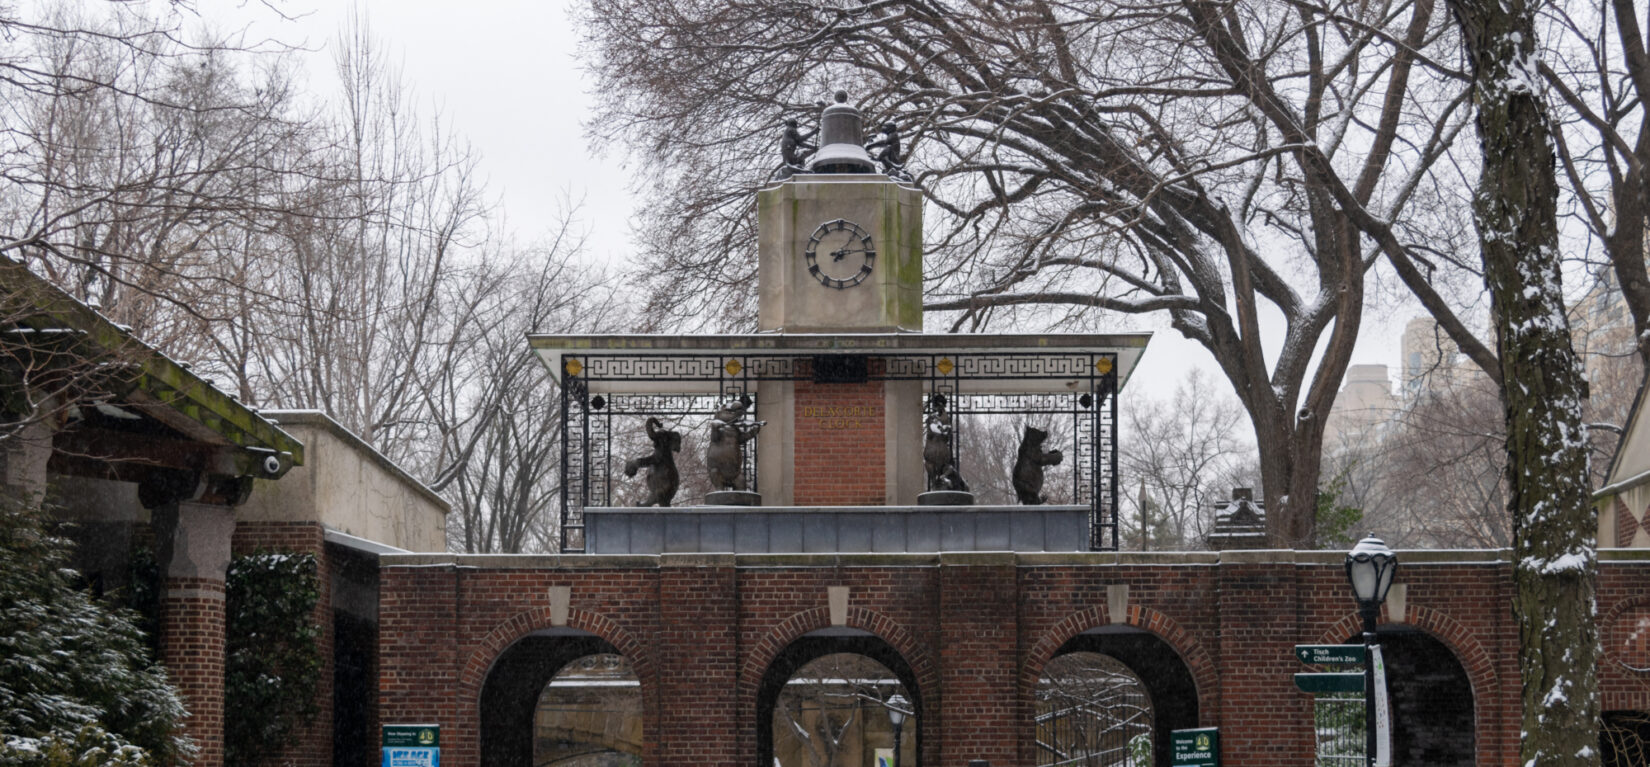 The animals that make up the Delacorte Clock add charm to a winter day